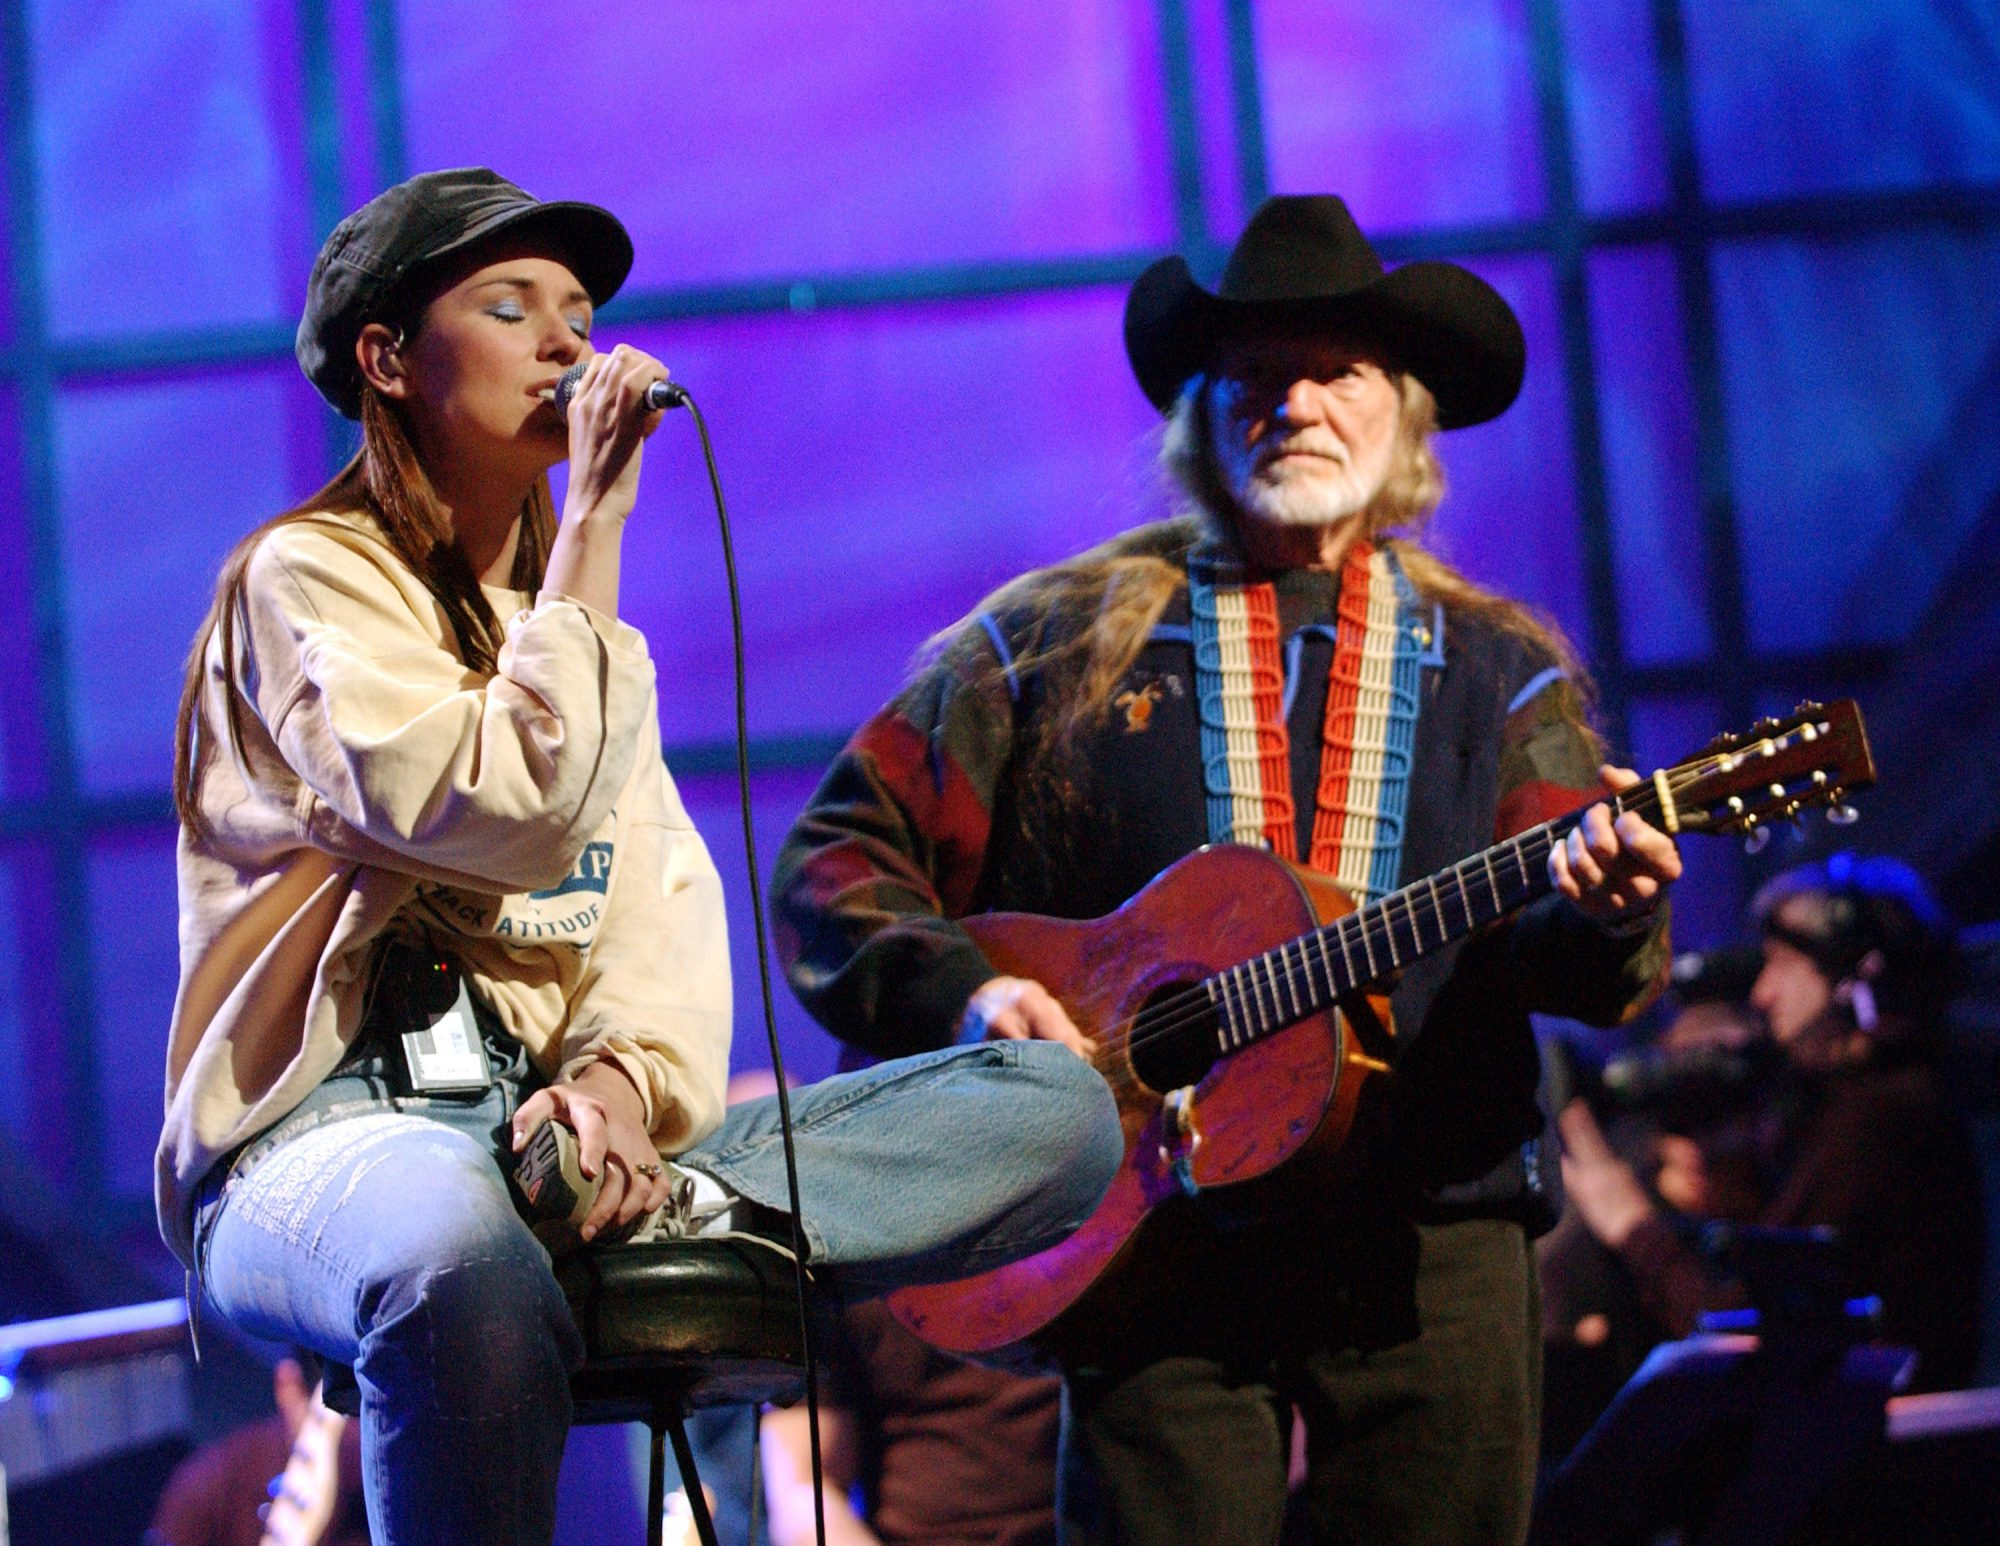 2003 Willie Nelson and Friends: Live and Kickin' USA Network special